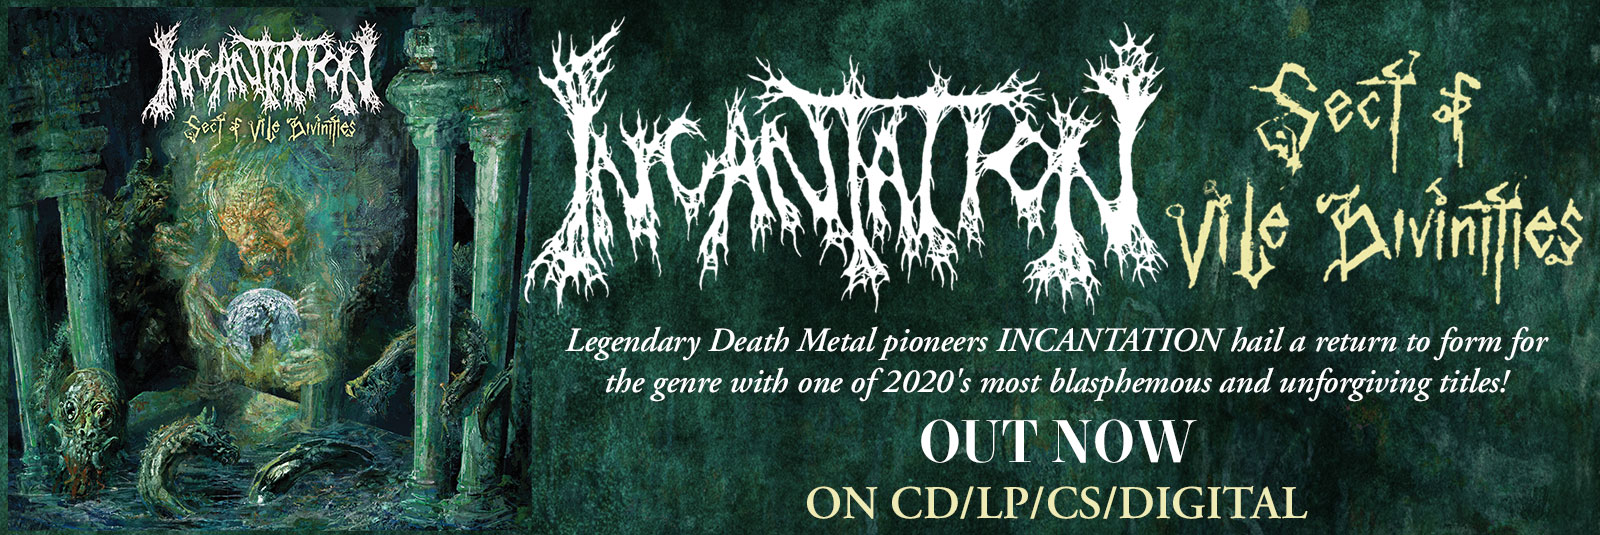 incantation-sect-of-vile-divinities-death-metal-relapse-out-now